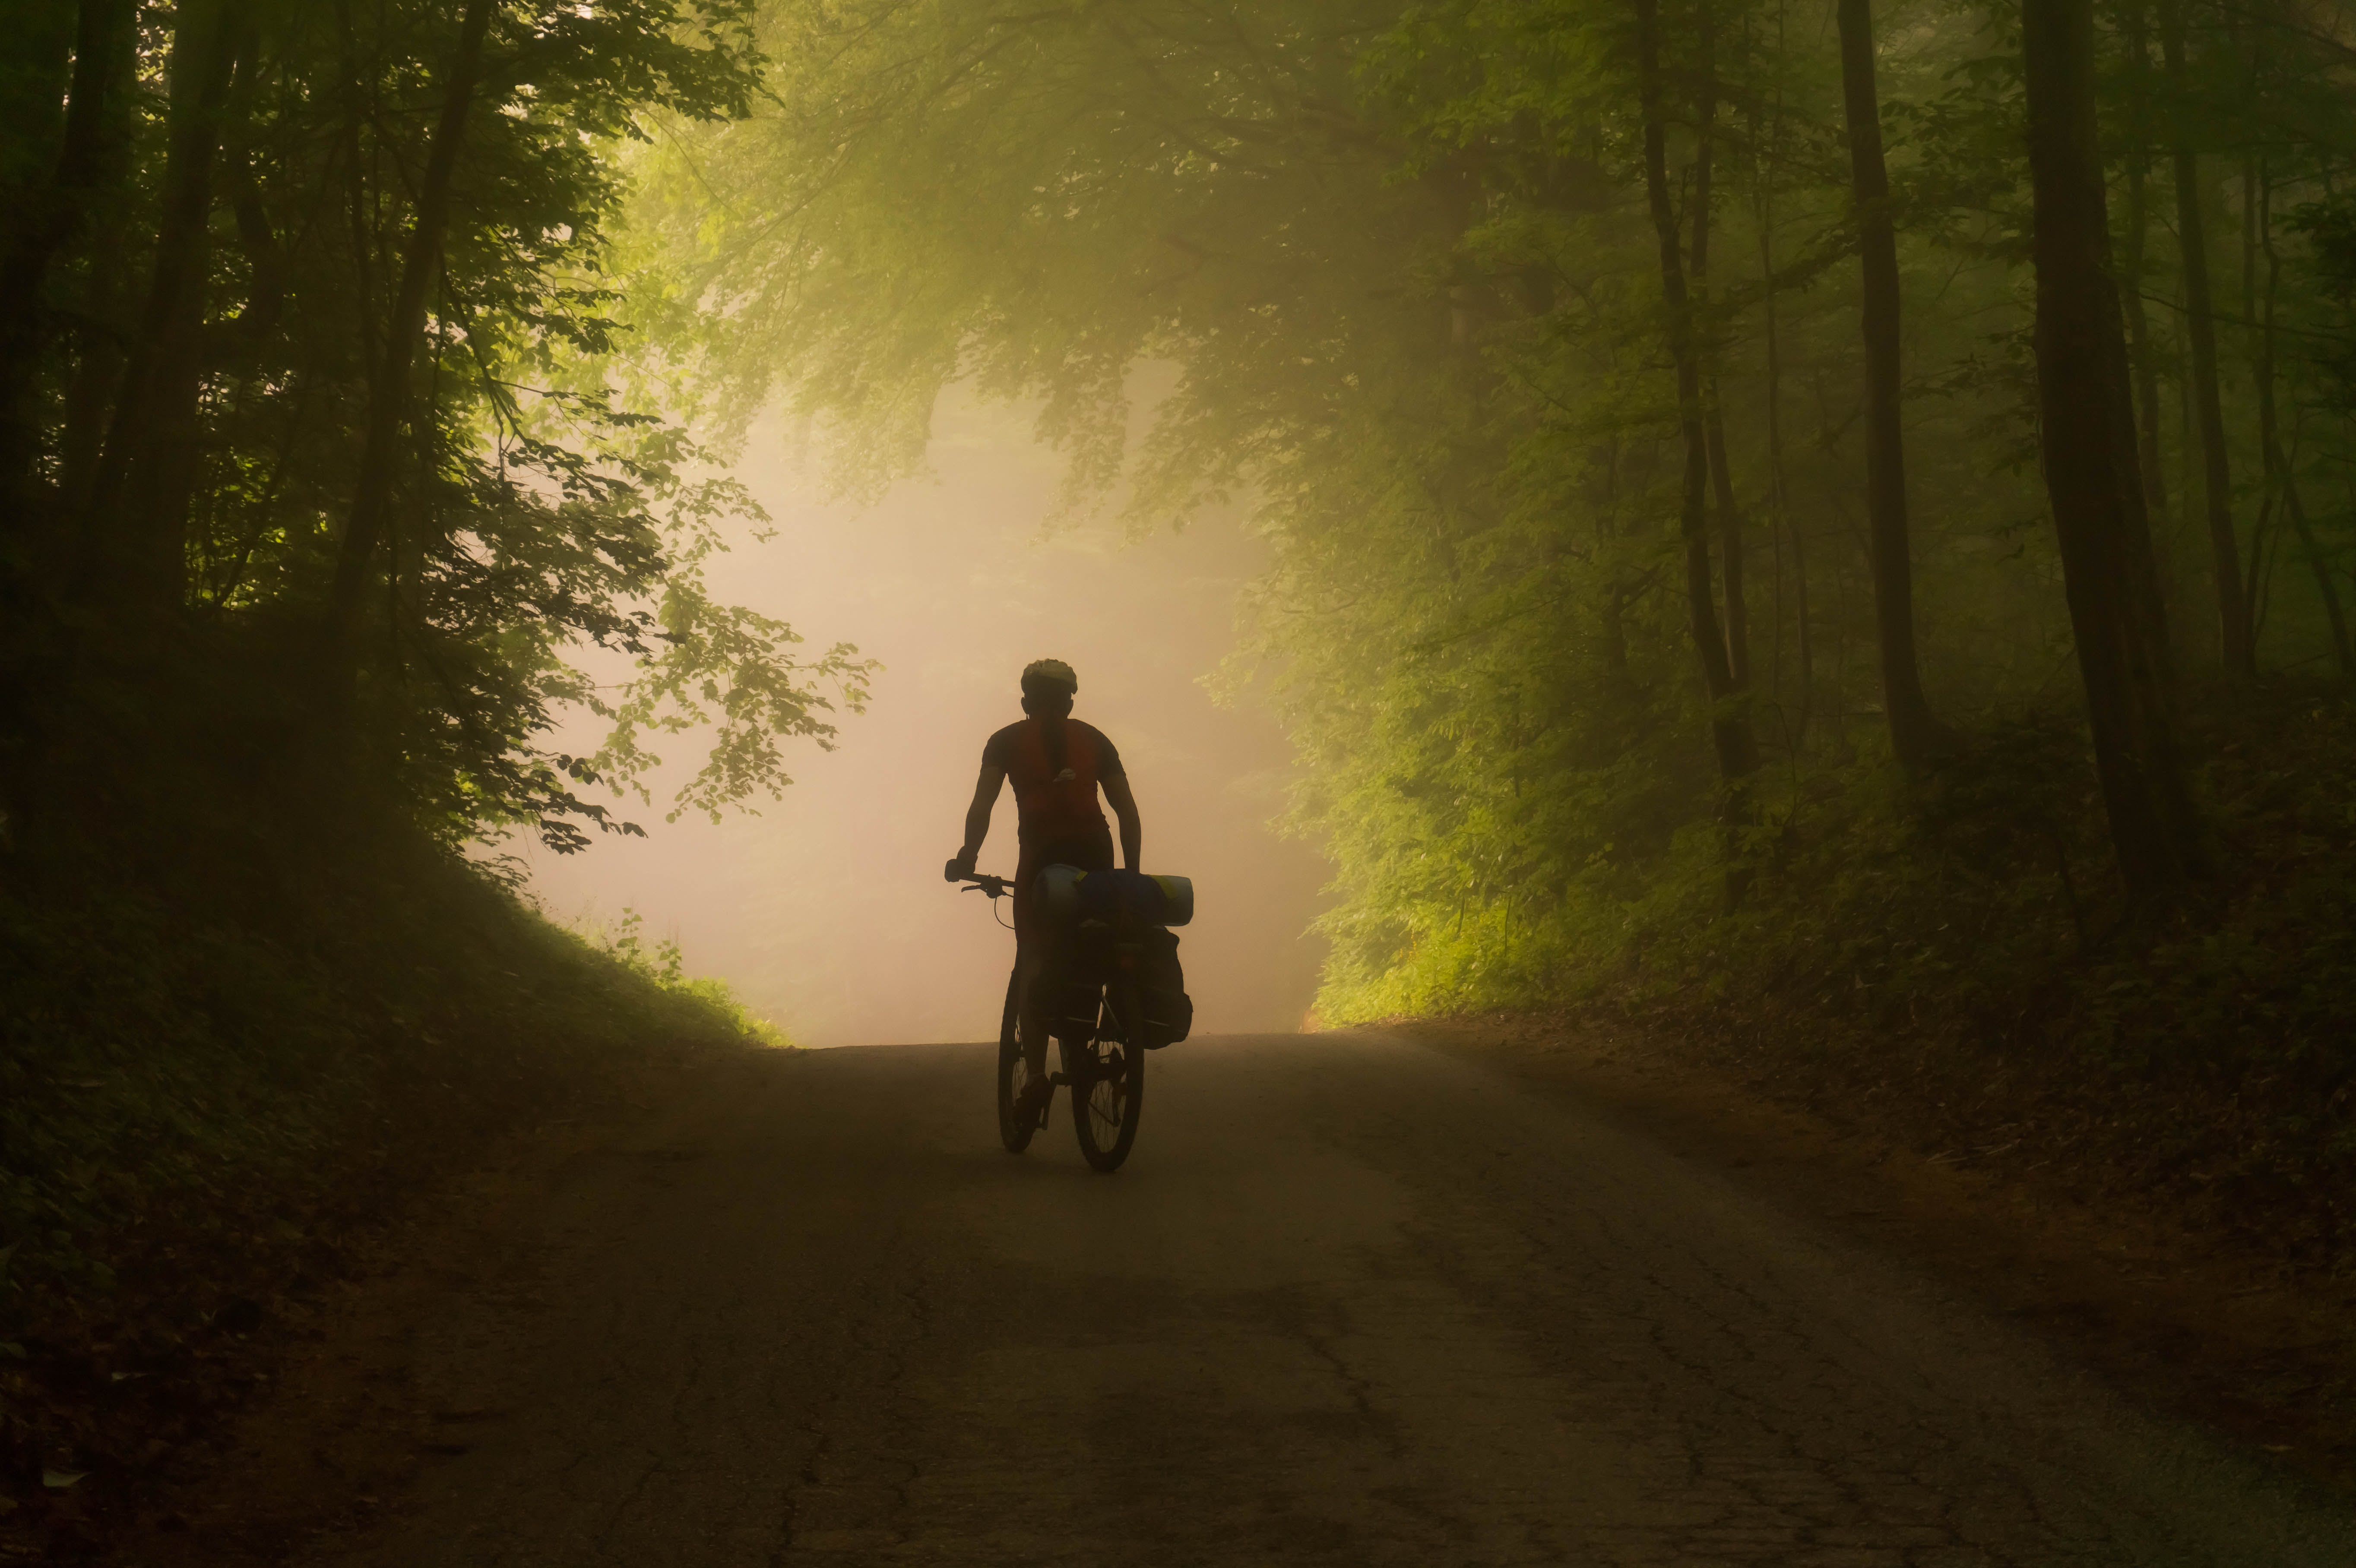 Person Riding on Bicycle Near Trees